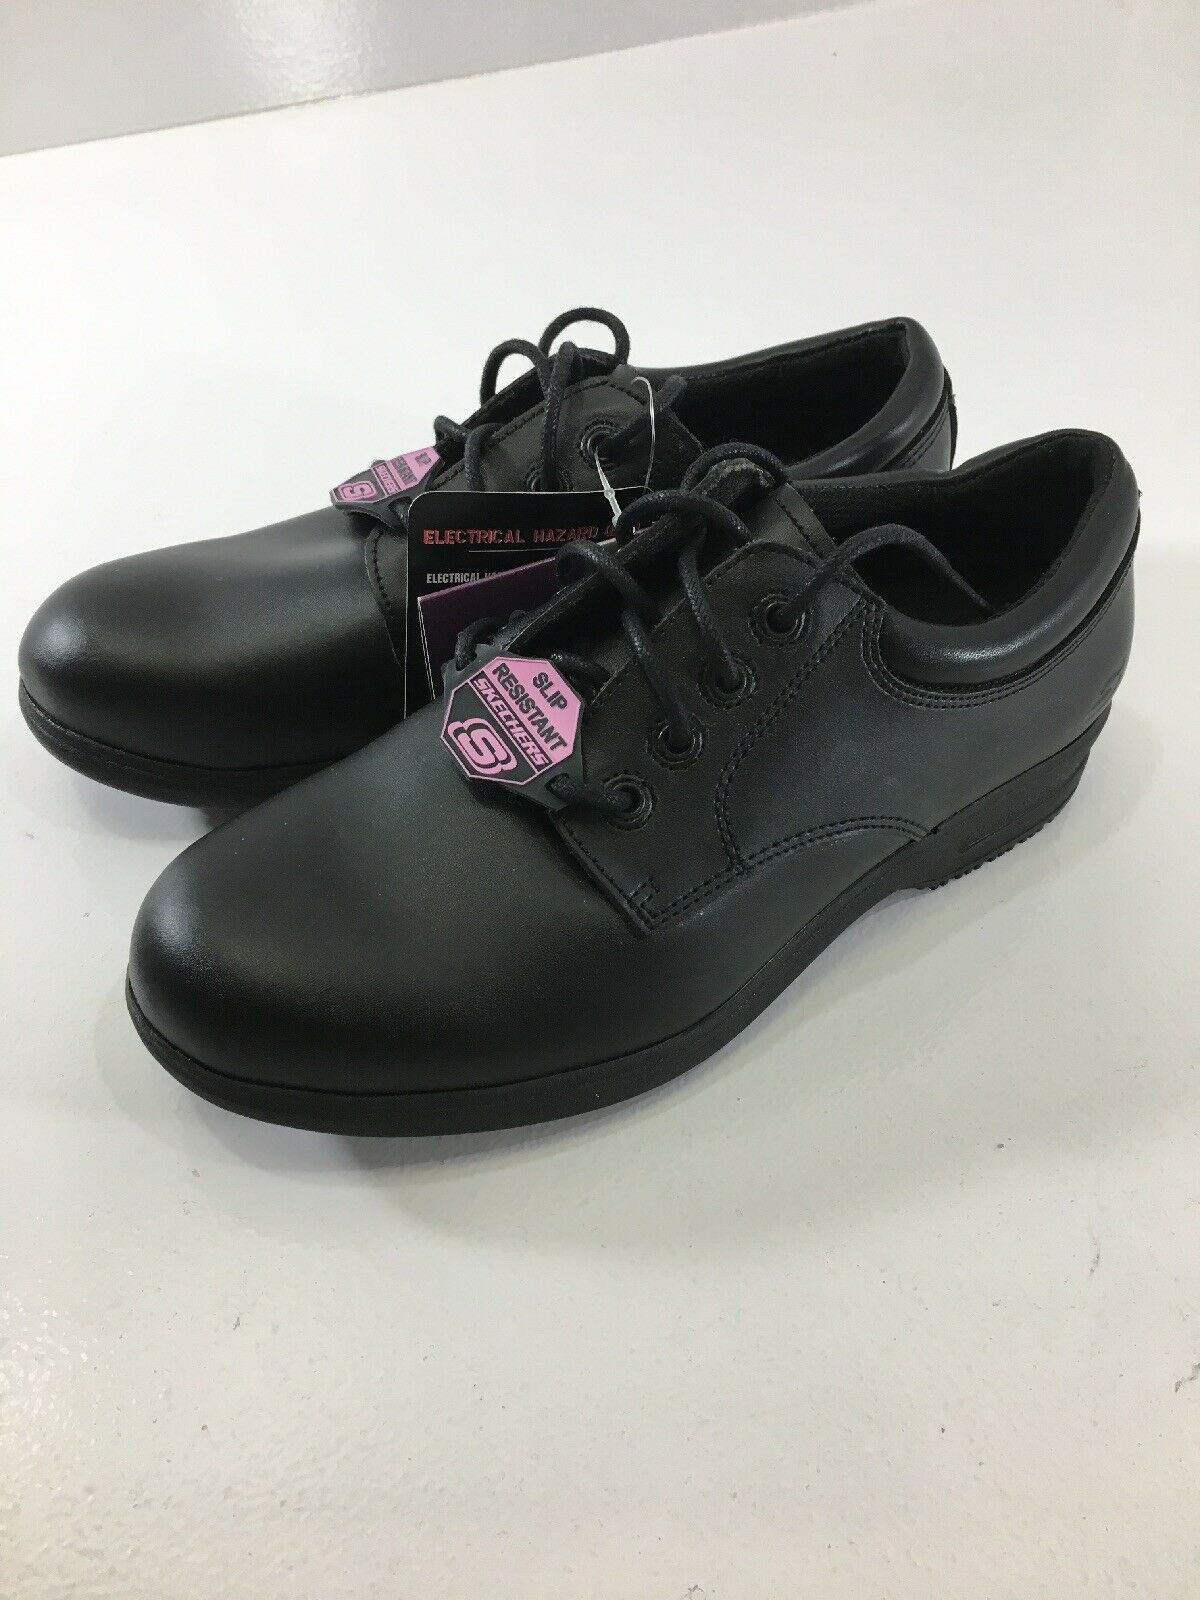 Skechers Womens Caviar II Slip Resistant Casual Work Oxford shoes Black 5.5 NWT@